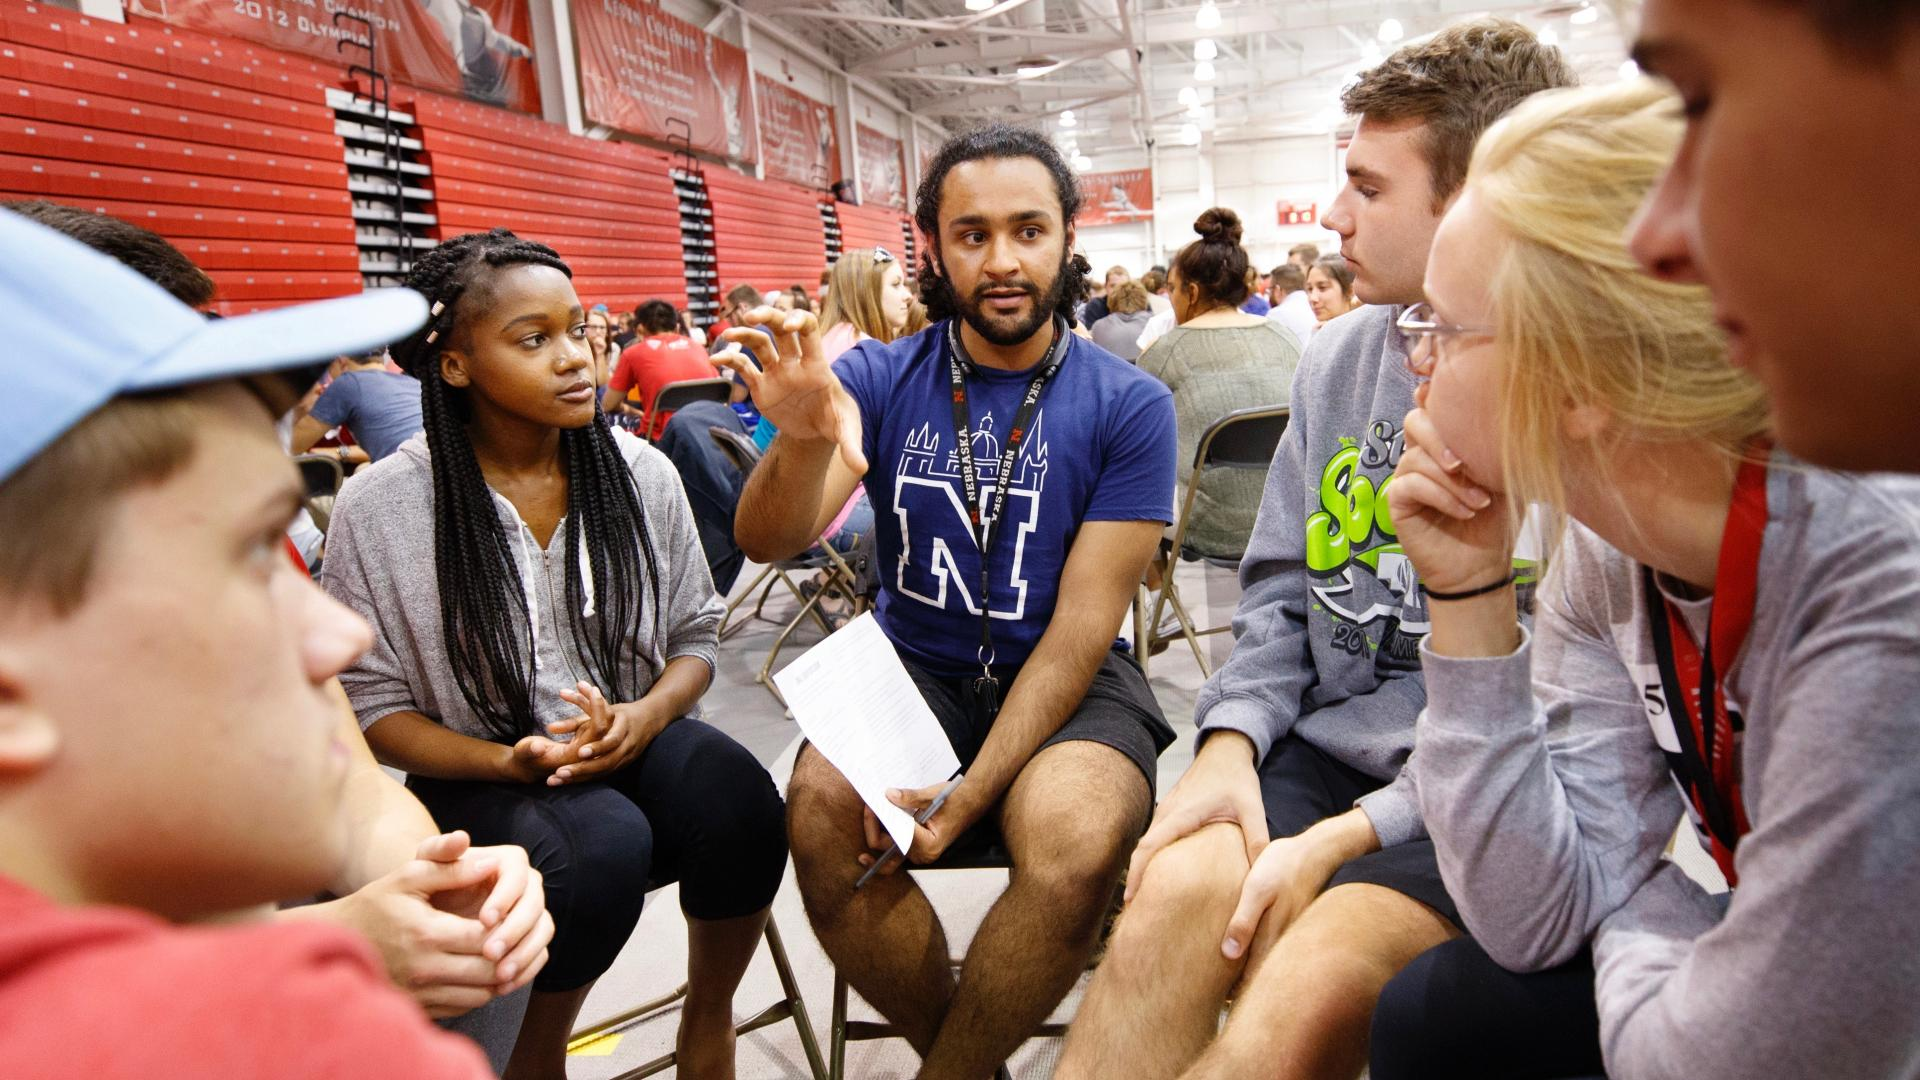 Students at Husker Dialogues